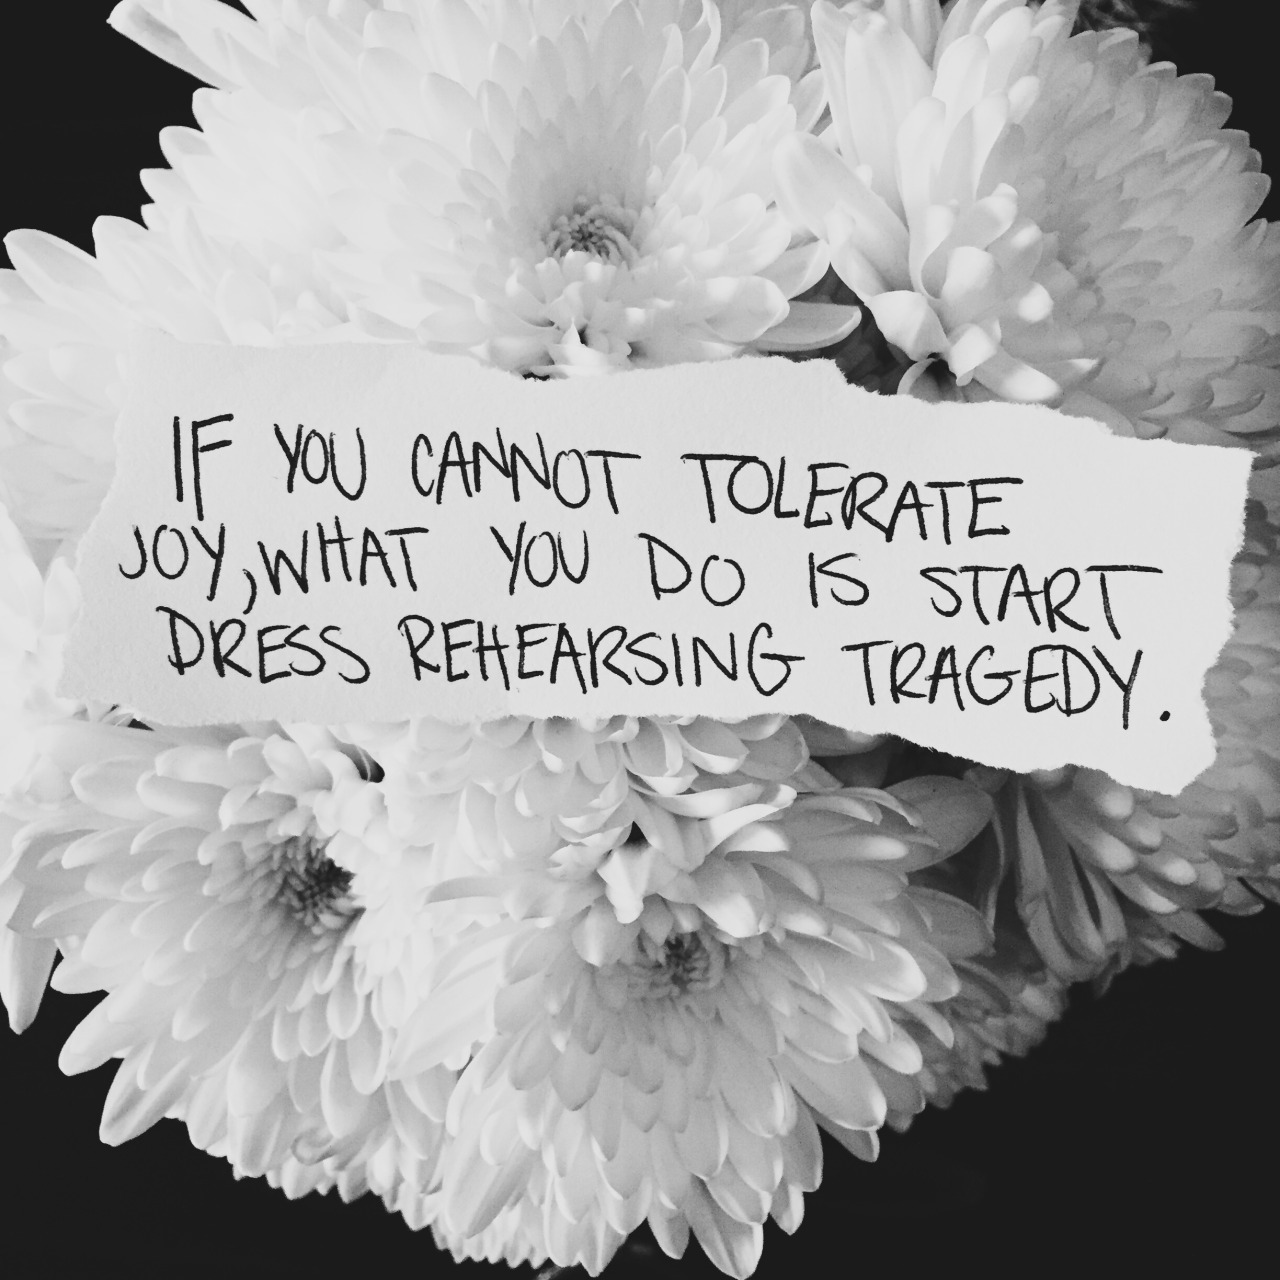 """""""If you cannot tolerate joy, what you do is start dress rehearsing tragedy."""" - Brené Brown"""